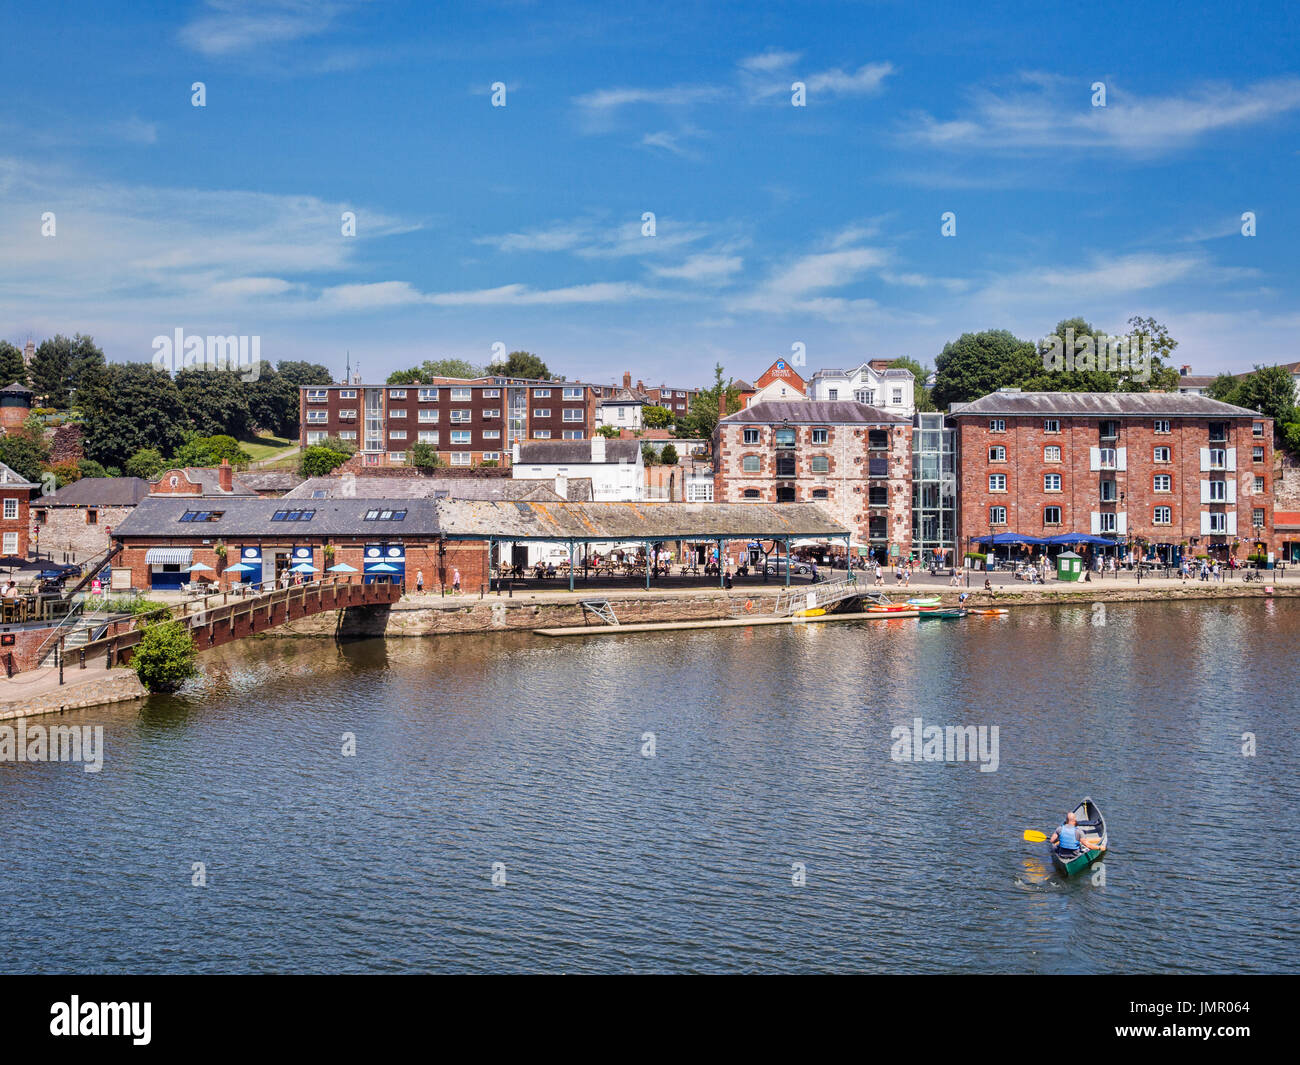 21 June 2017: Exeter, Devon, England, UK - A view across the River Exe to some of the attractions on Exeter Quays. - Stock Image